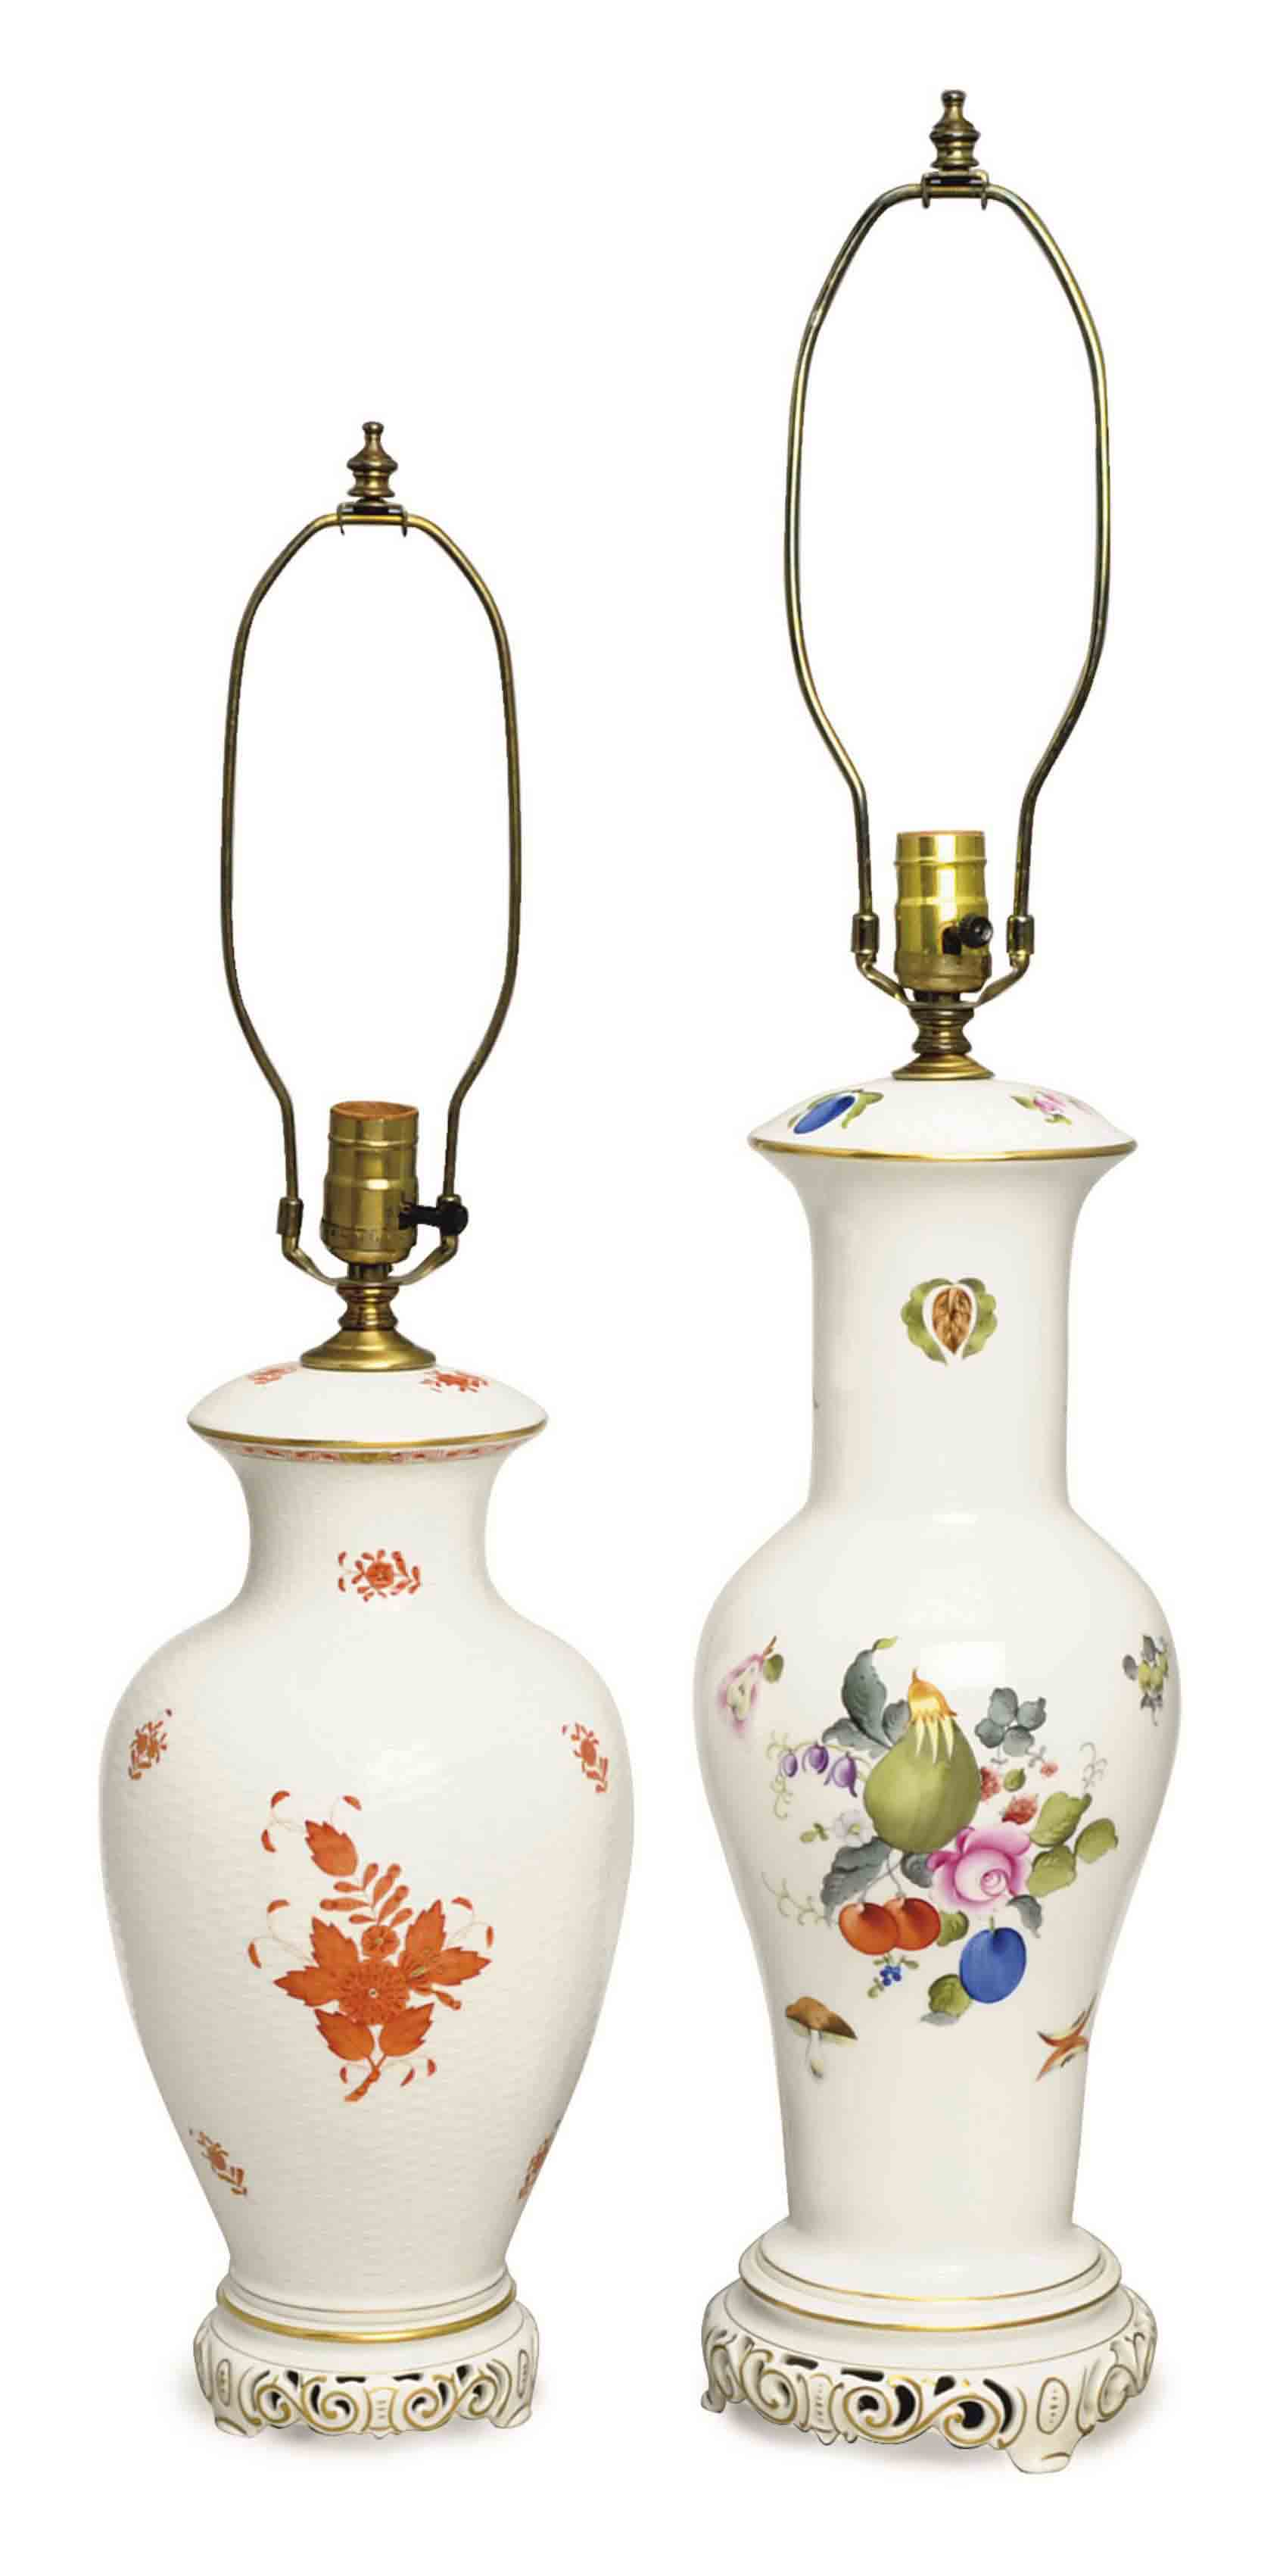 TWO HEREND WHITE-GROUND AND FLORAL DECORATED TABLE LAMPS,